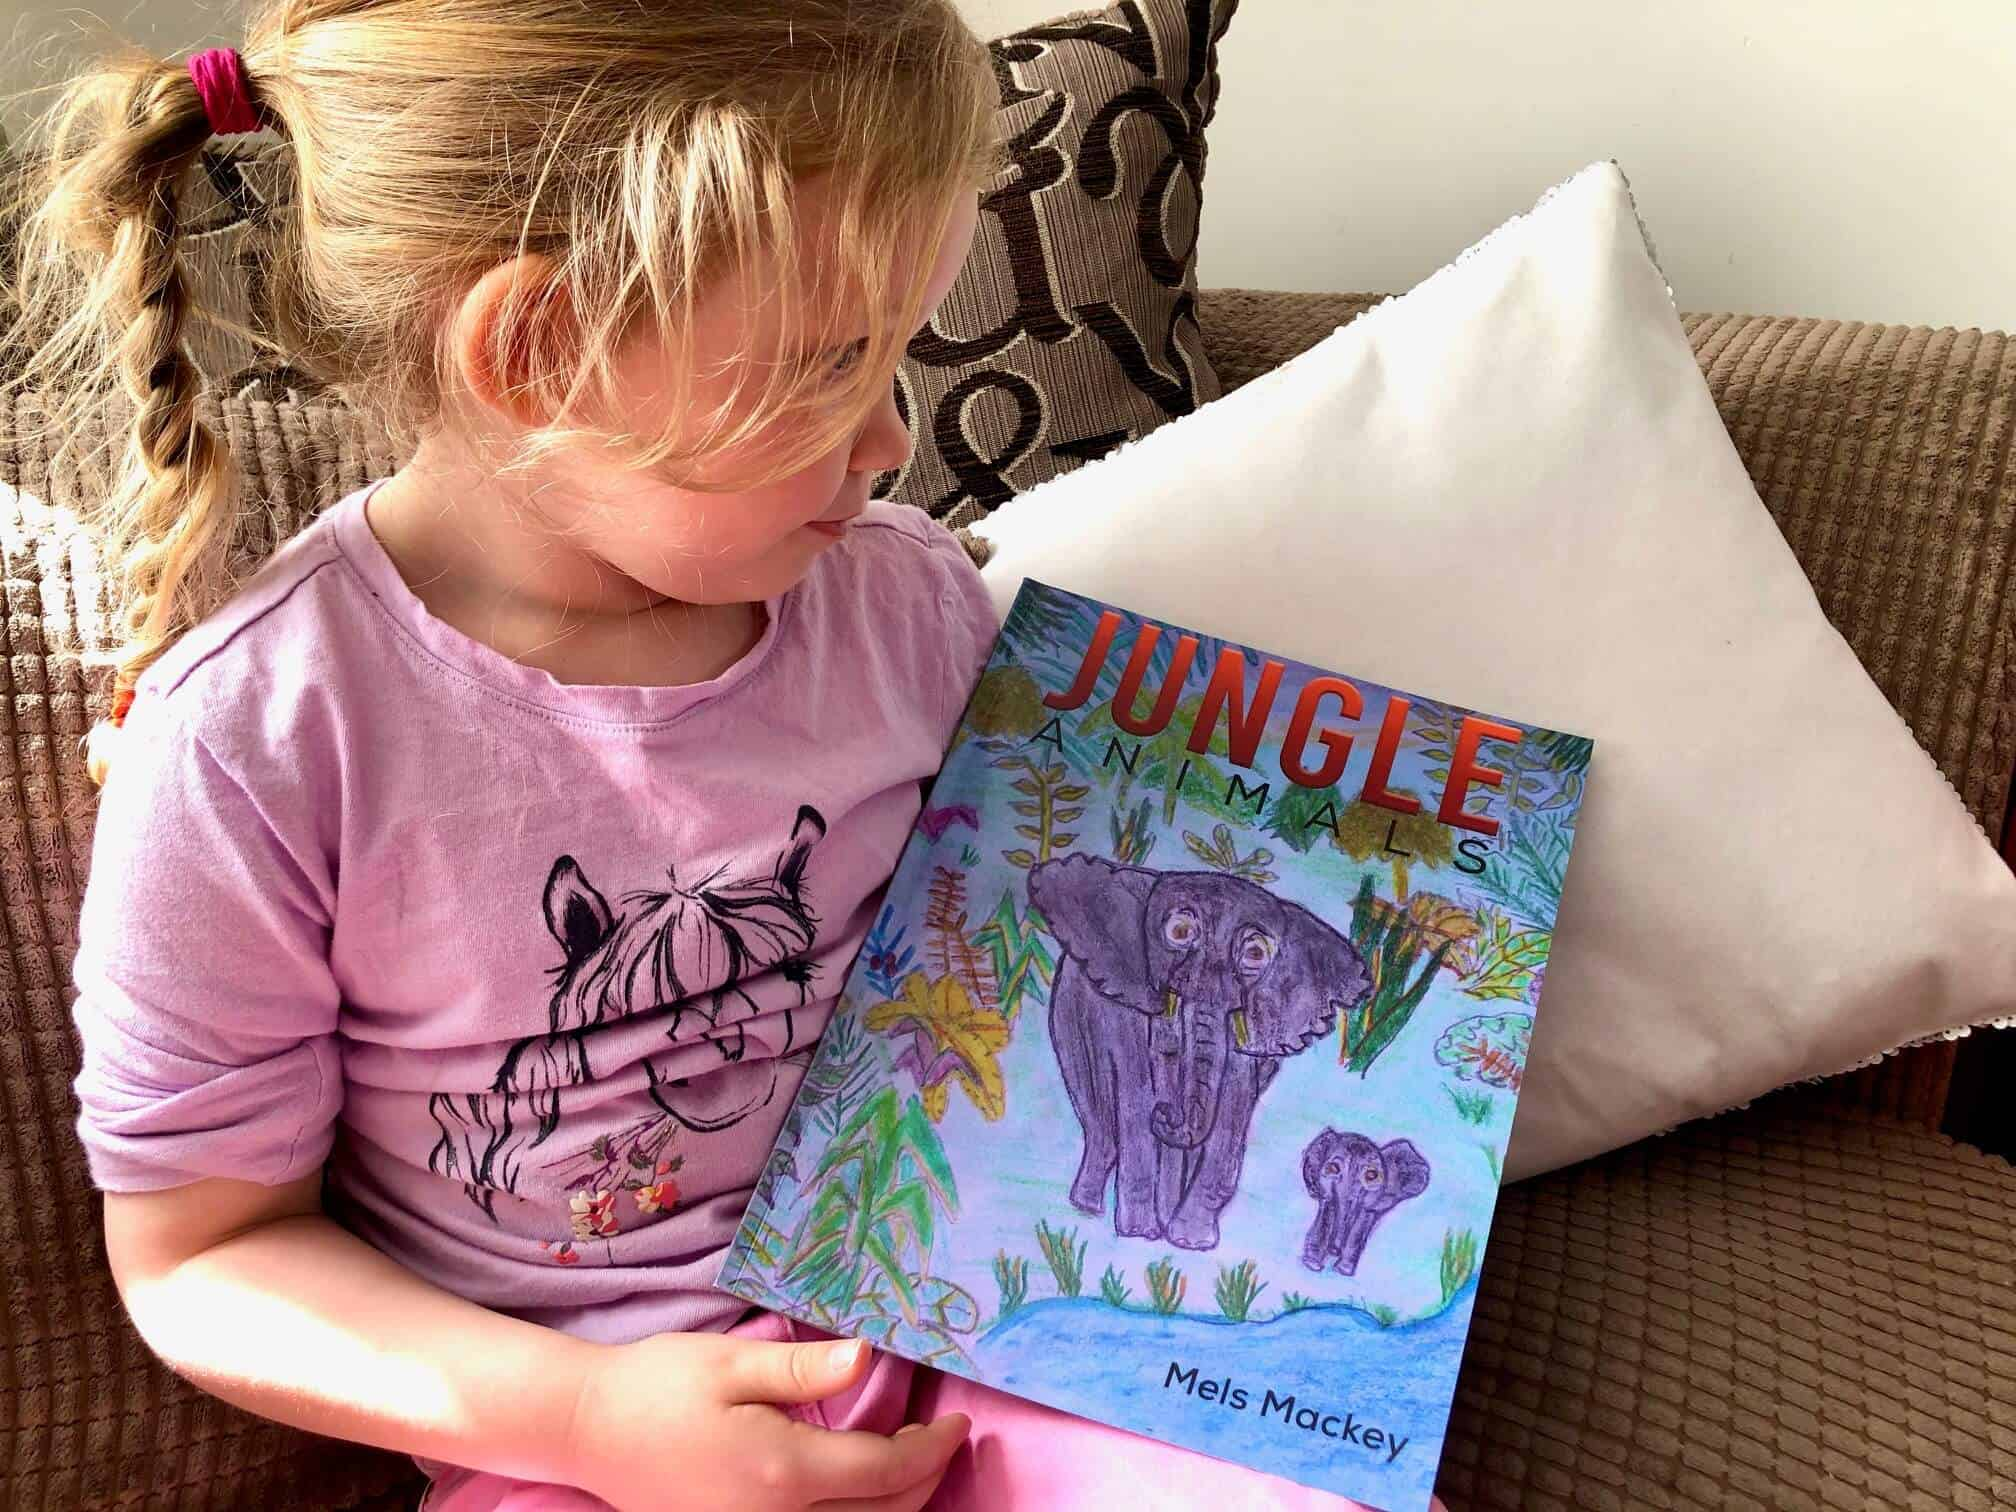 Jungle Animals by Mels Mackey - Review and Giveaway